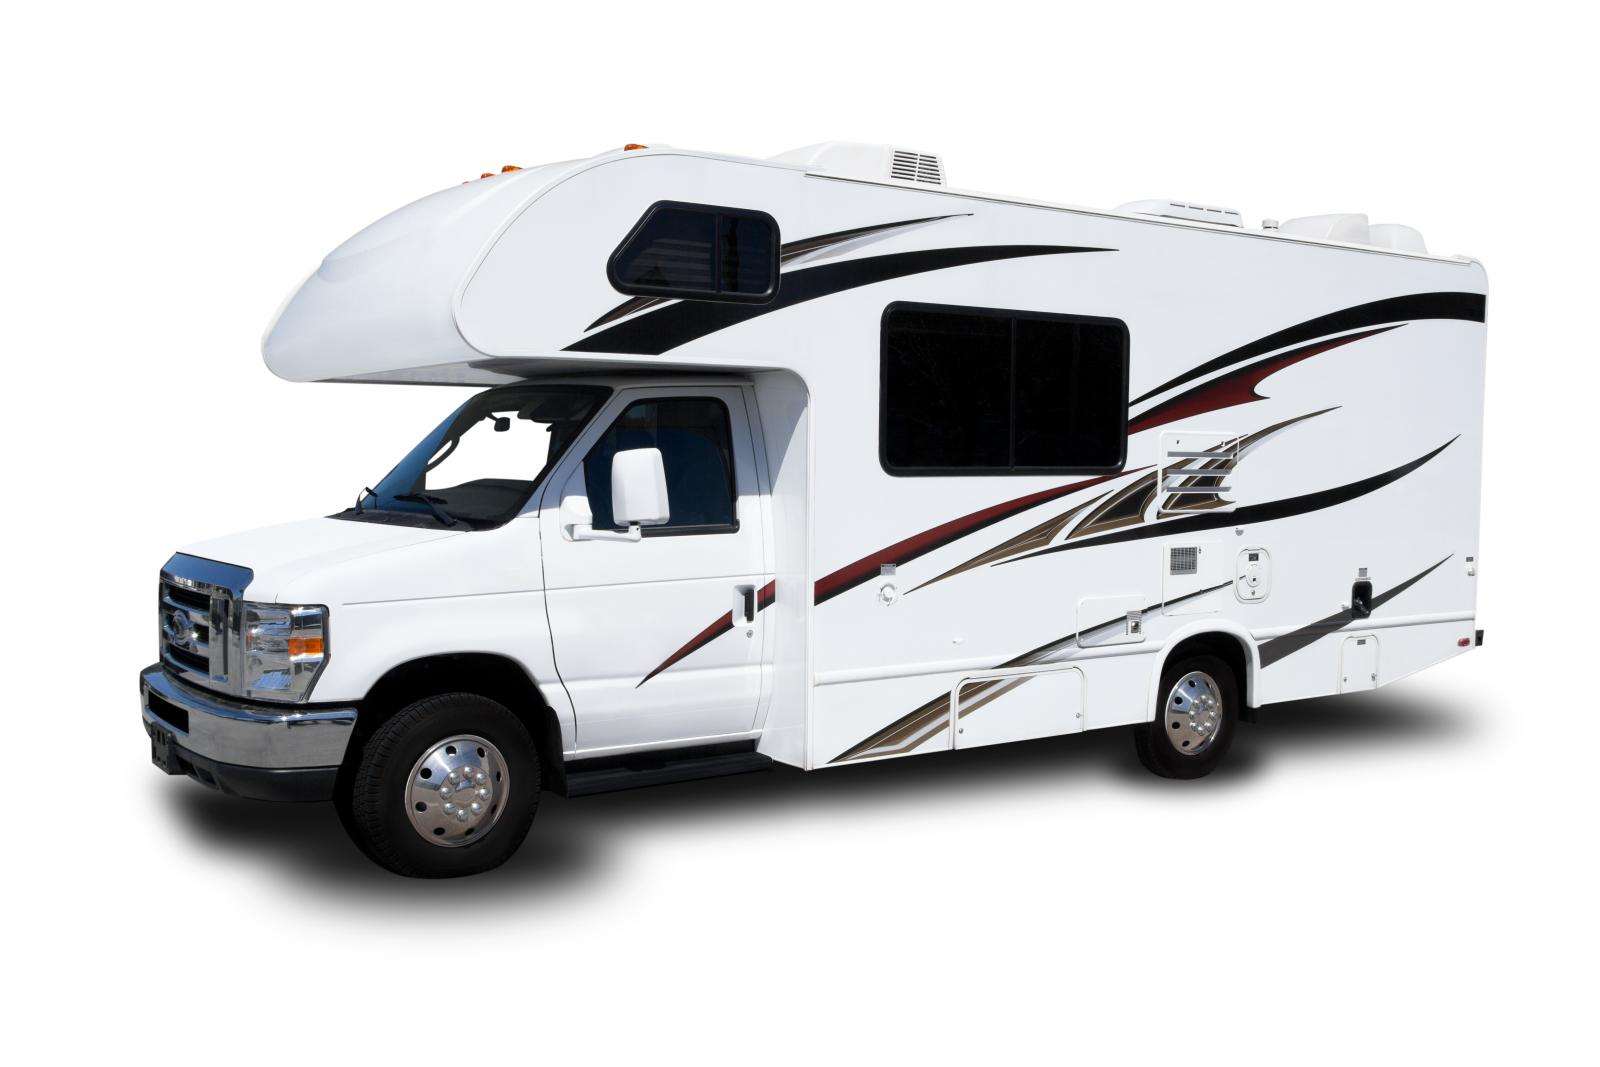 sc 1 st  Armor Storages & Armor Storage RV Boat and Vehicle Parking | Armor Storages